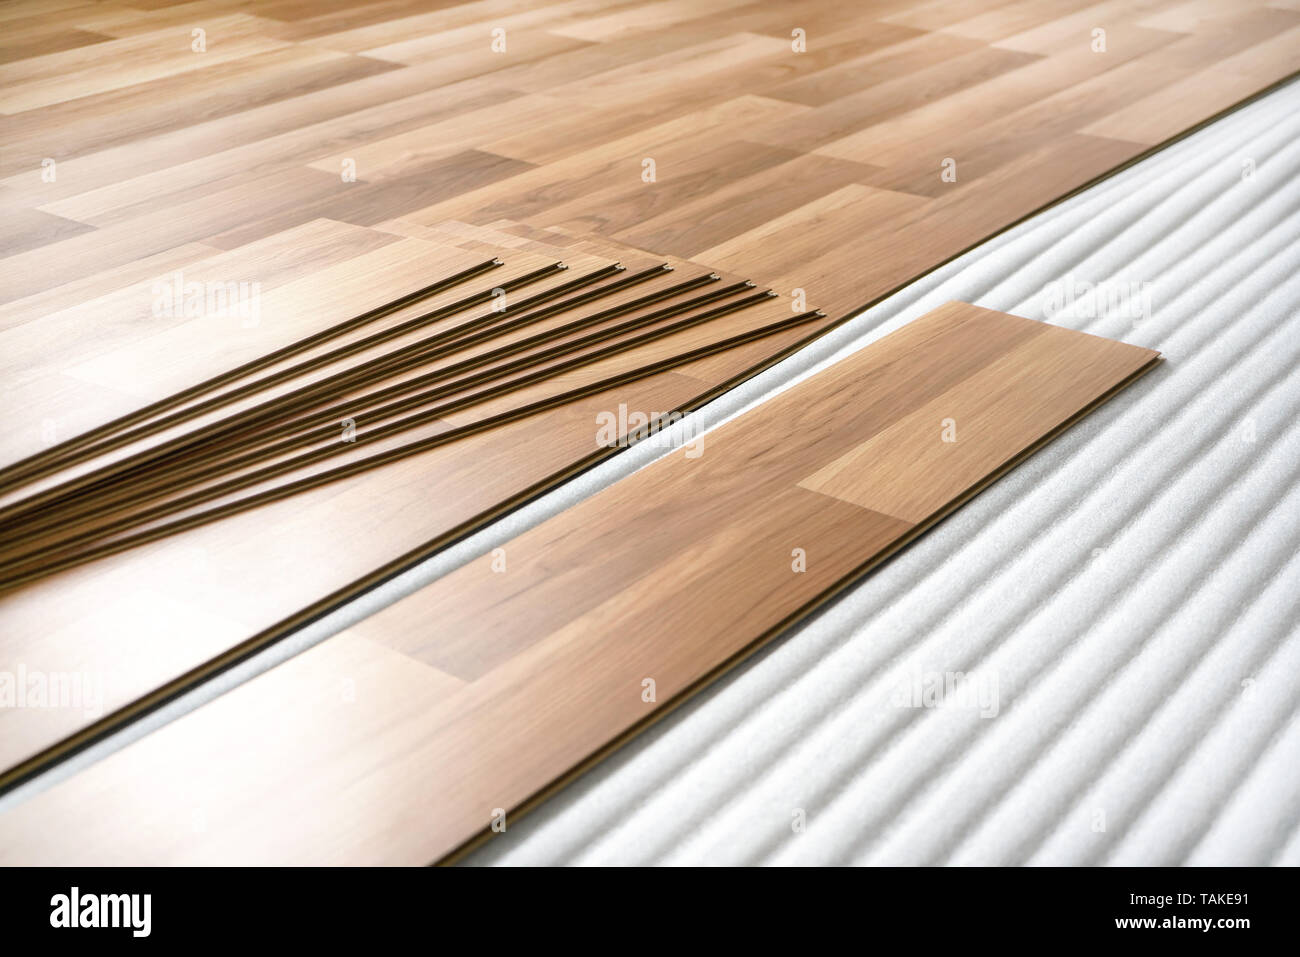 Wooden tiles, ready to be put down as laminated floor on base foam - home flooring renovation. - Stock Image